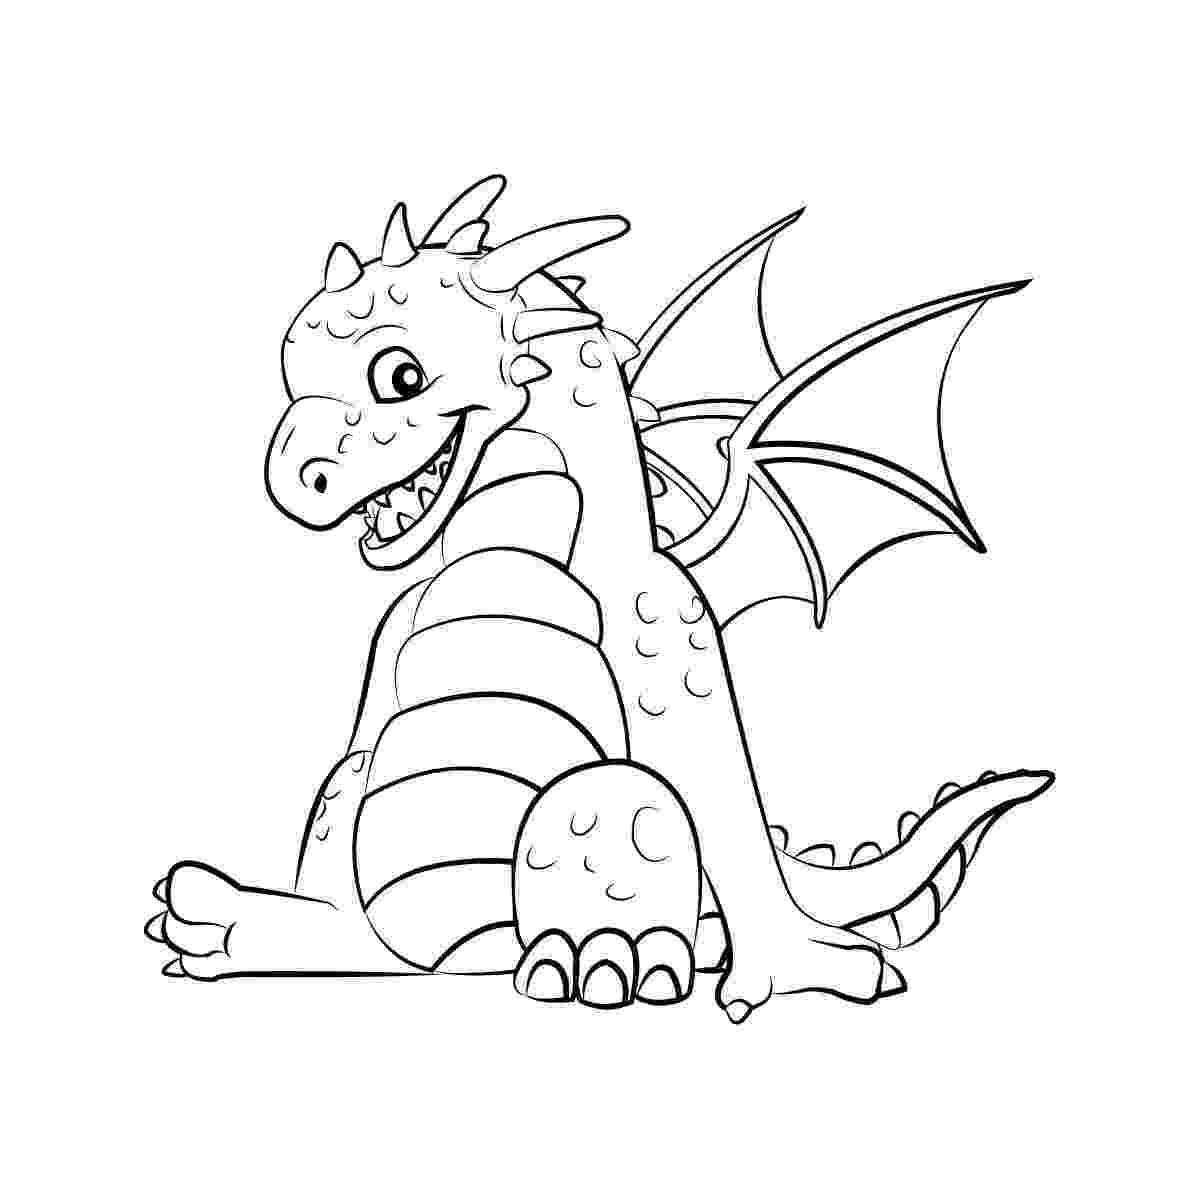 dragons coloring pages chinese dragon coloring pages to download and print for free pages coloring dragons